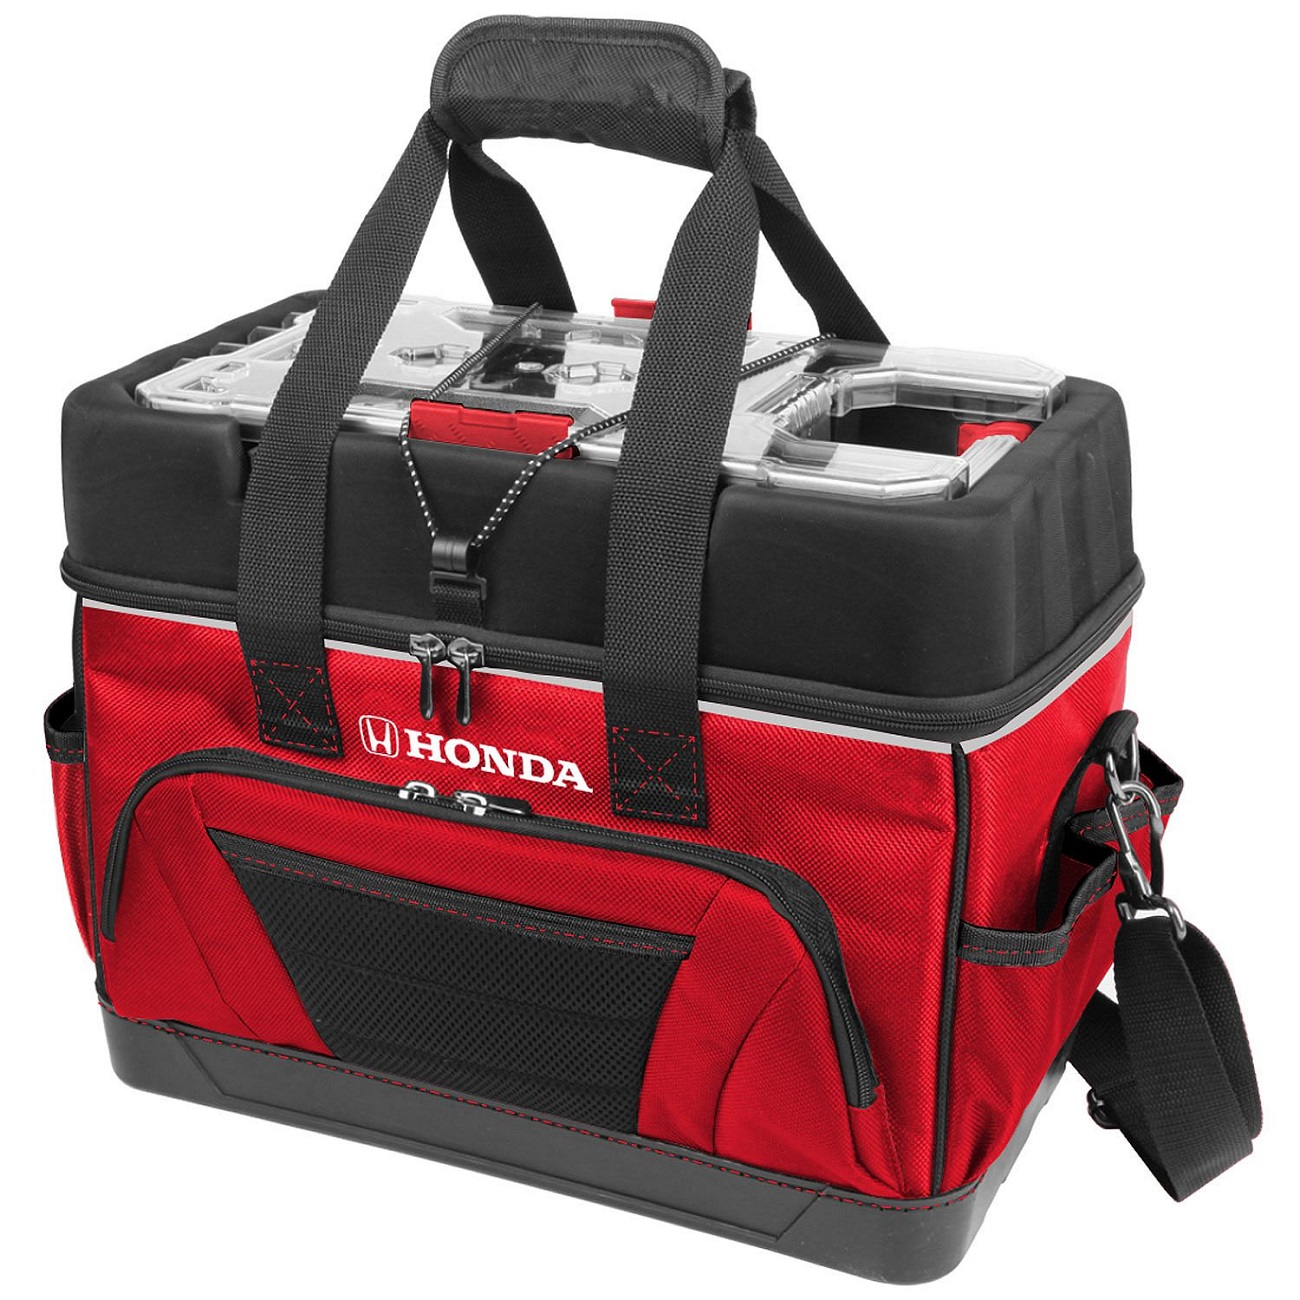 "Honda 16"" Tool Bag with Plastic 16"" x 9"" x 13"" Organizer Free Ship by Honda"